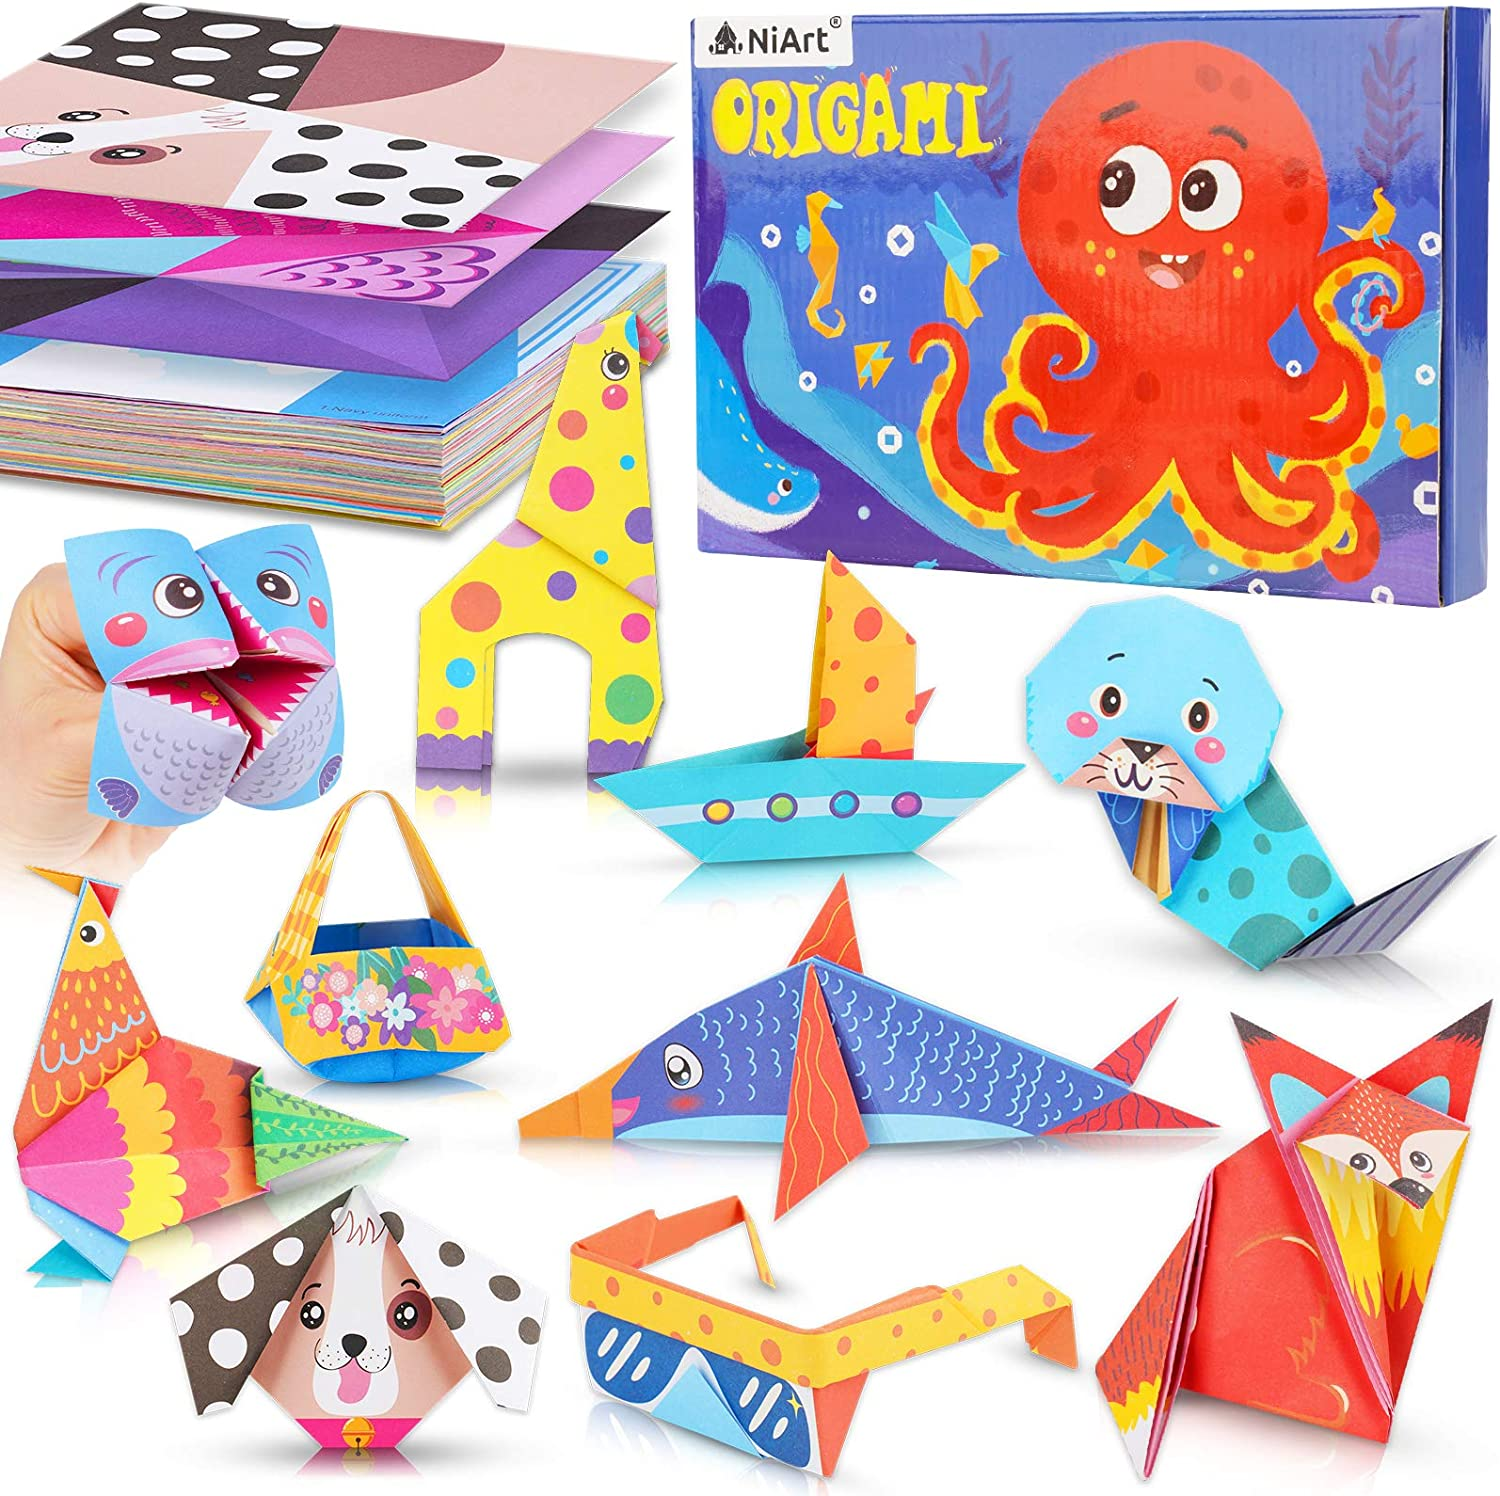 NiArt Origami New arrival Paper Brand new Kit 152 Sheets 72 Double-S Designs 5.5